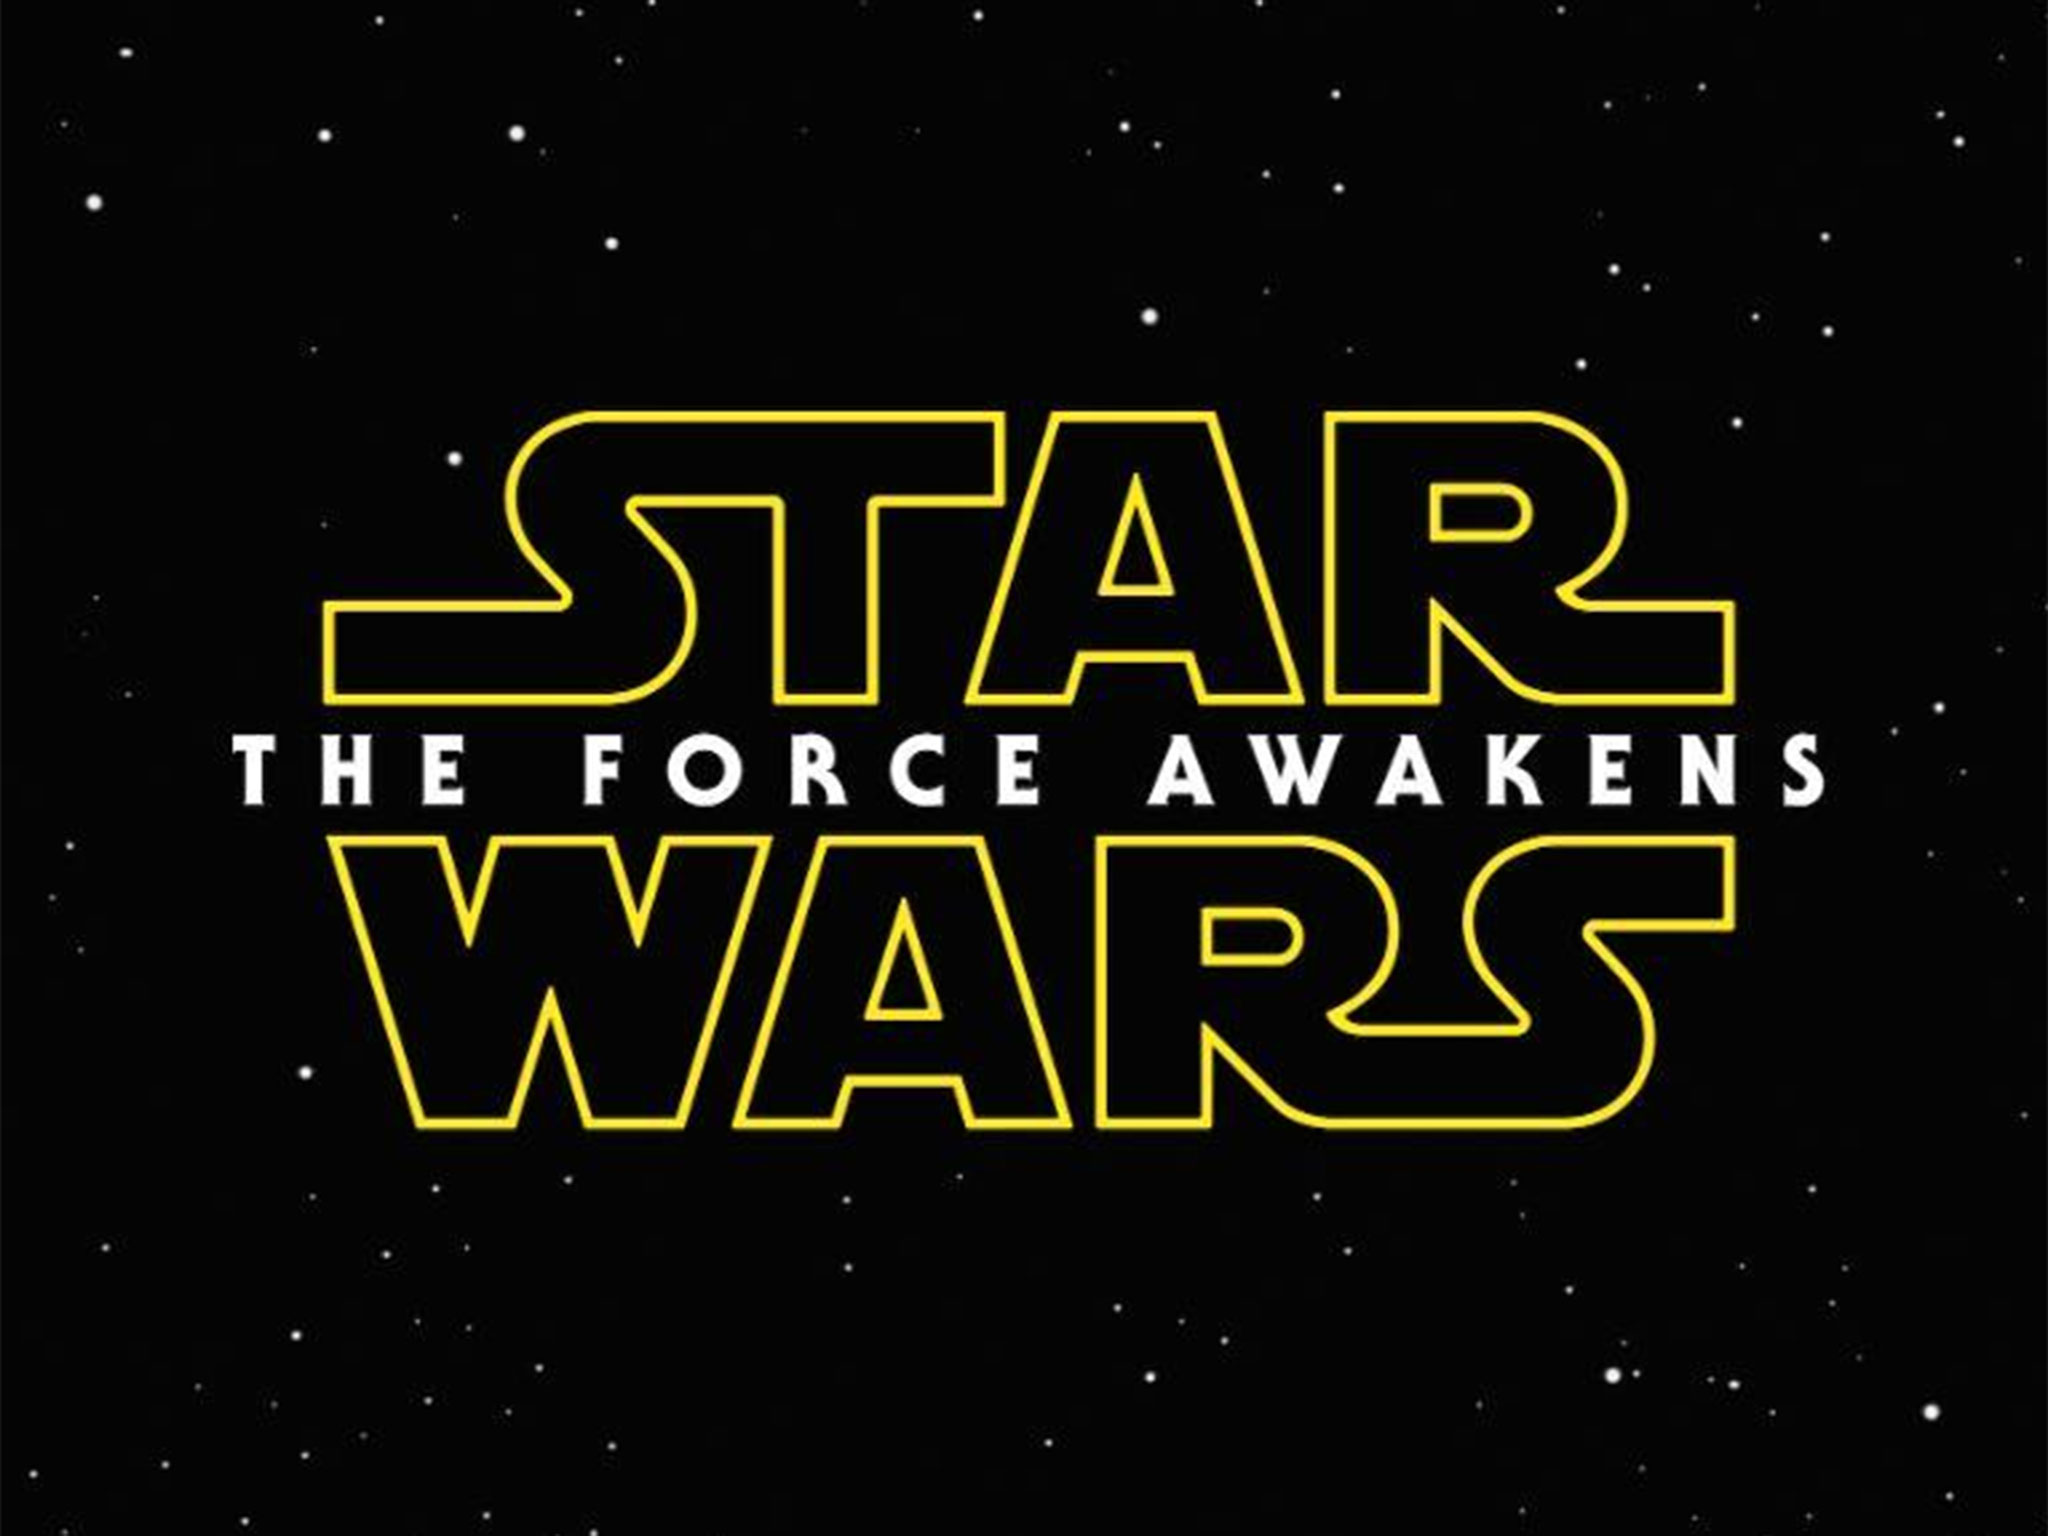 star wars the force awakens wallpaper for desktop